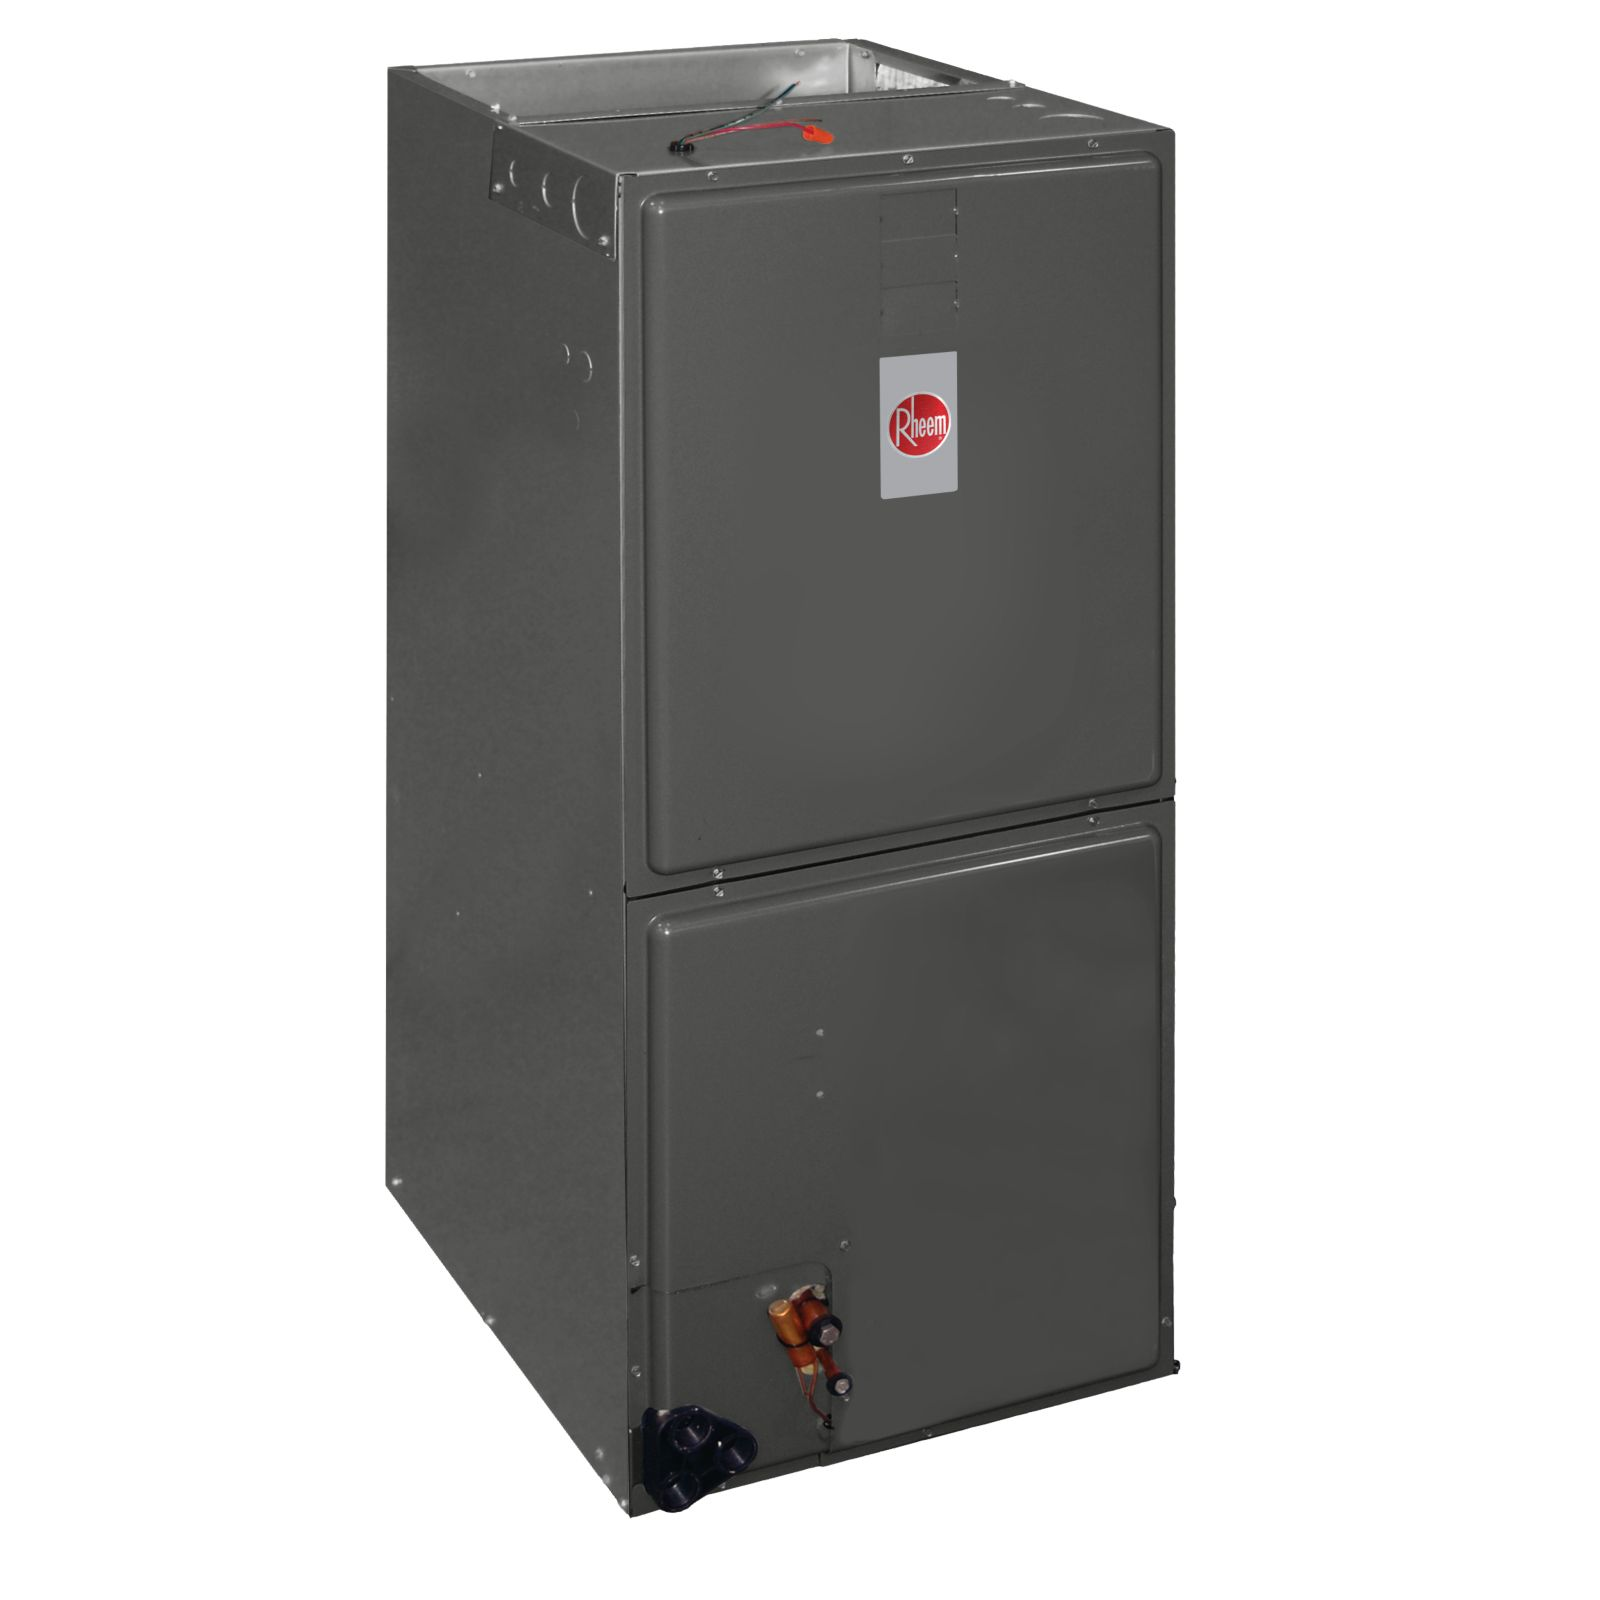 Rheem RHLL-HM4821JA - RHLL Series 4 Ton Multiposition High Efficiency Air Handler - Up to 16 SEER - R410A - X13 (ECM) Motor